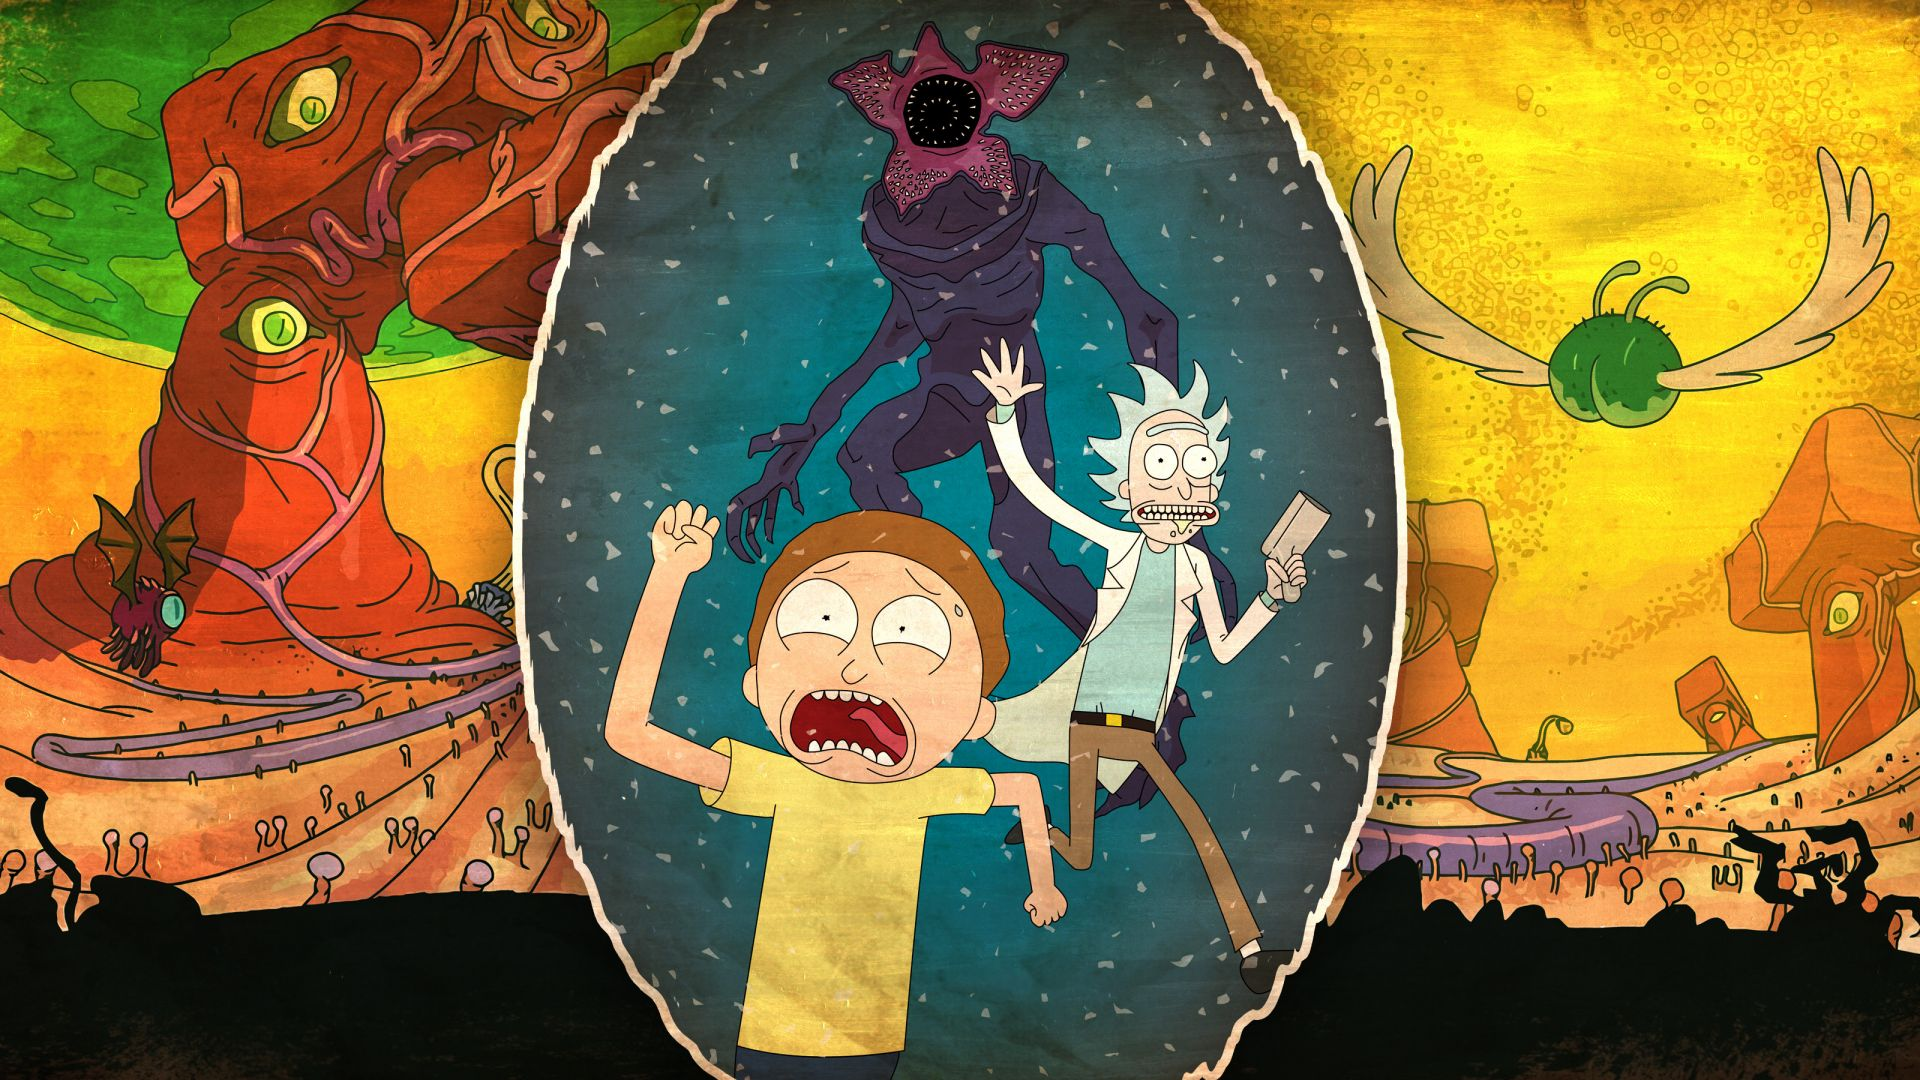 Rick and morty, animated, tv show, run, 4k Wallpaper